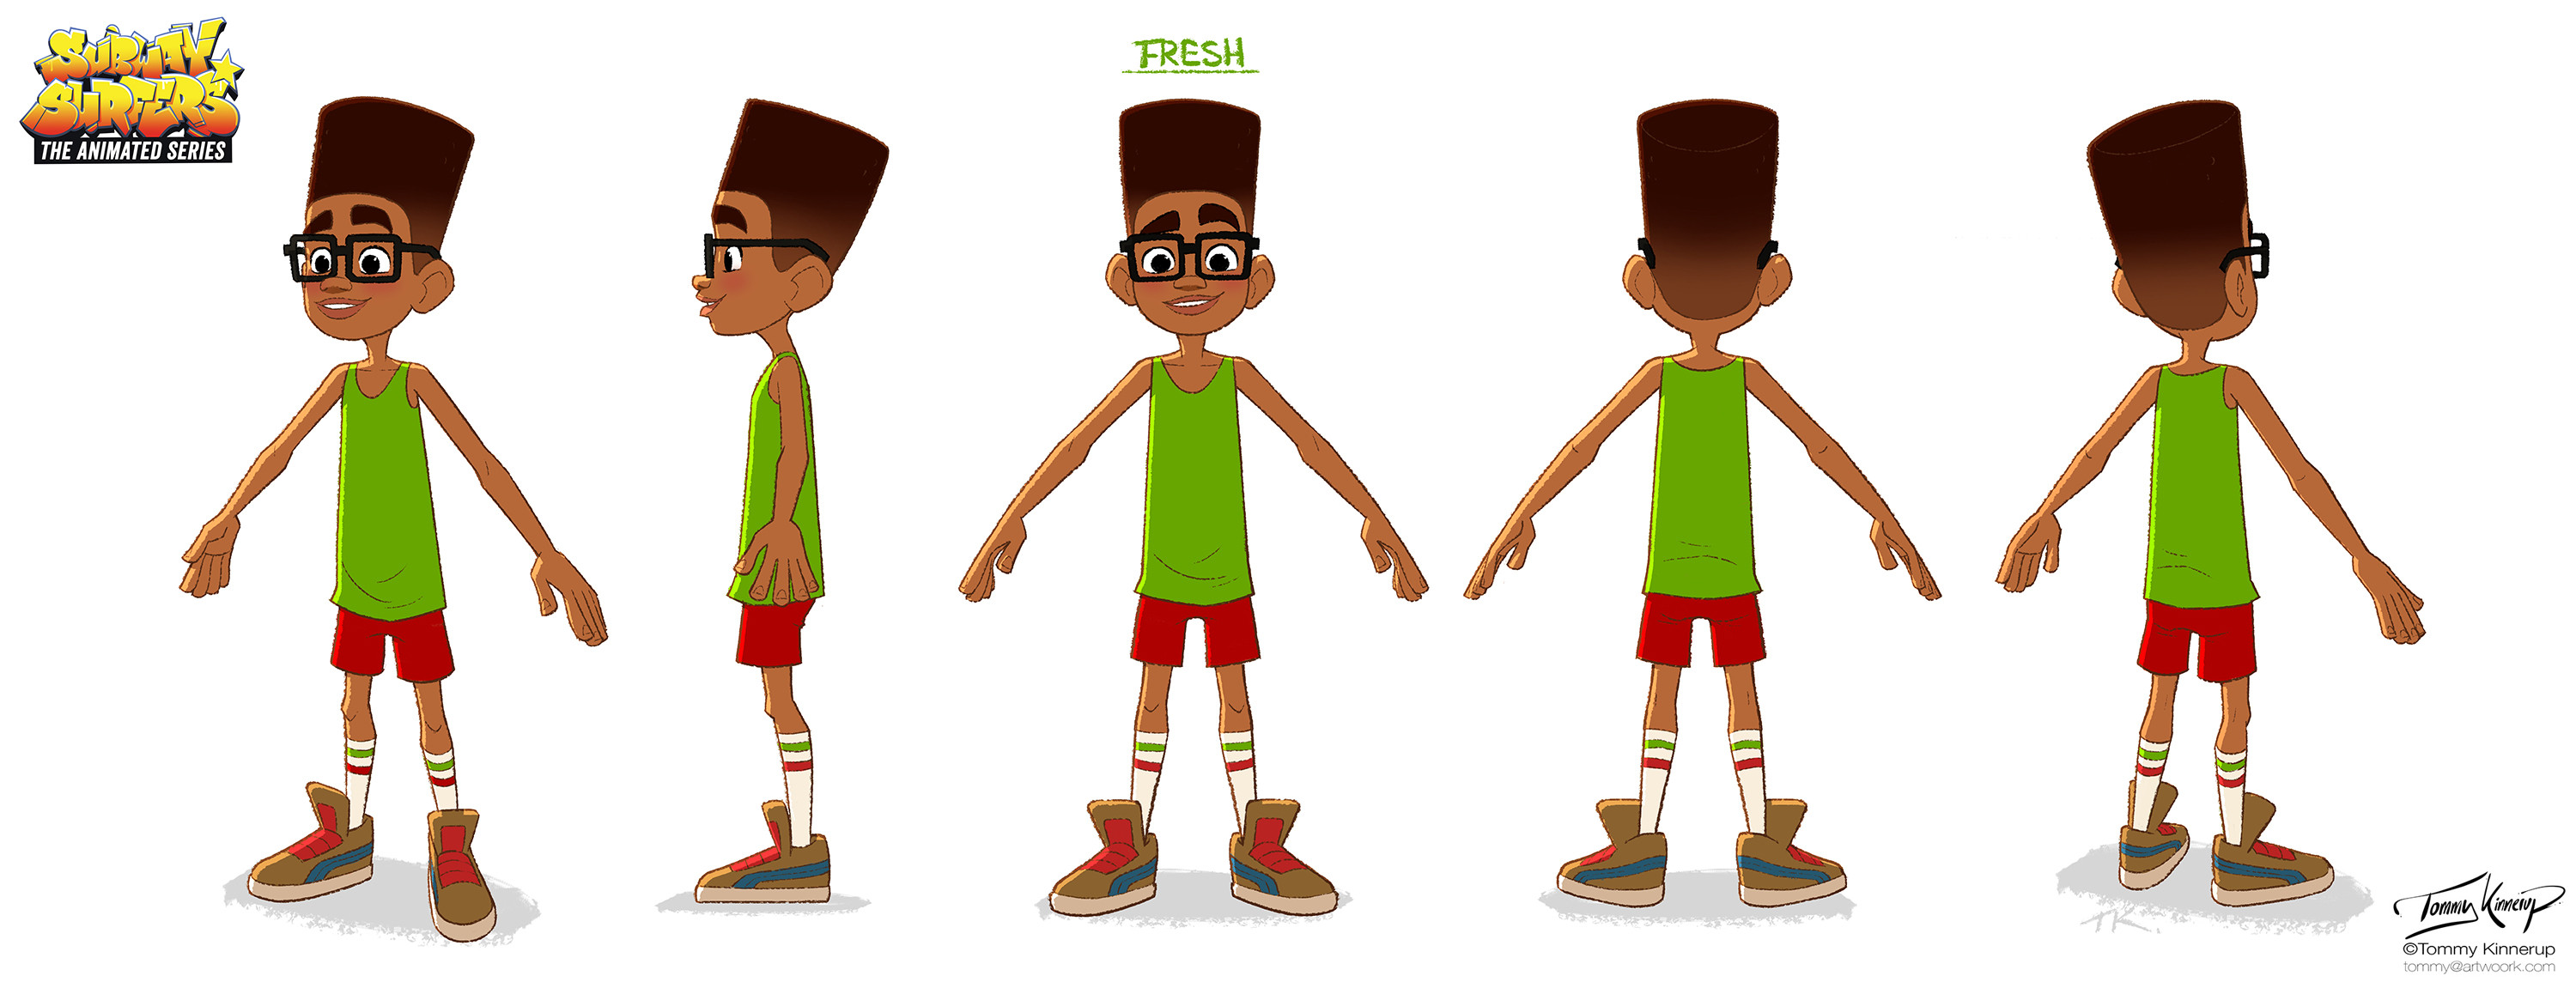 Fresh's orthographic views